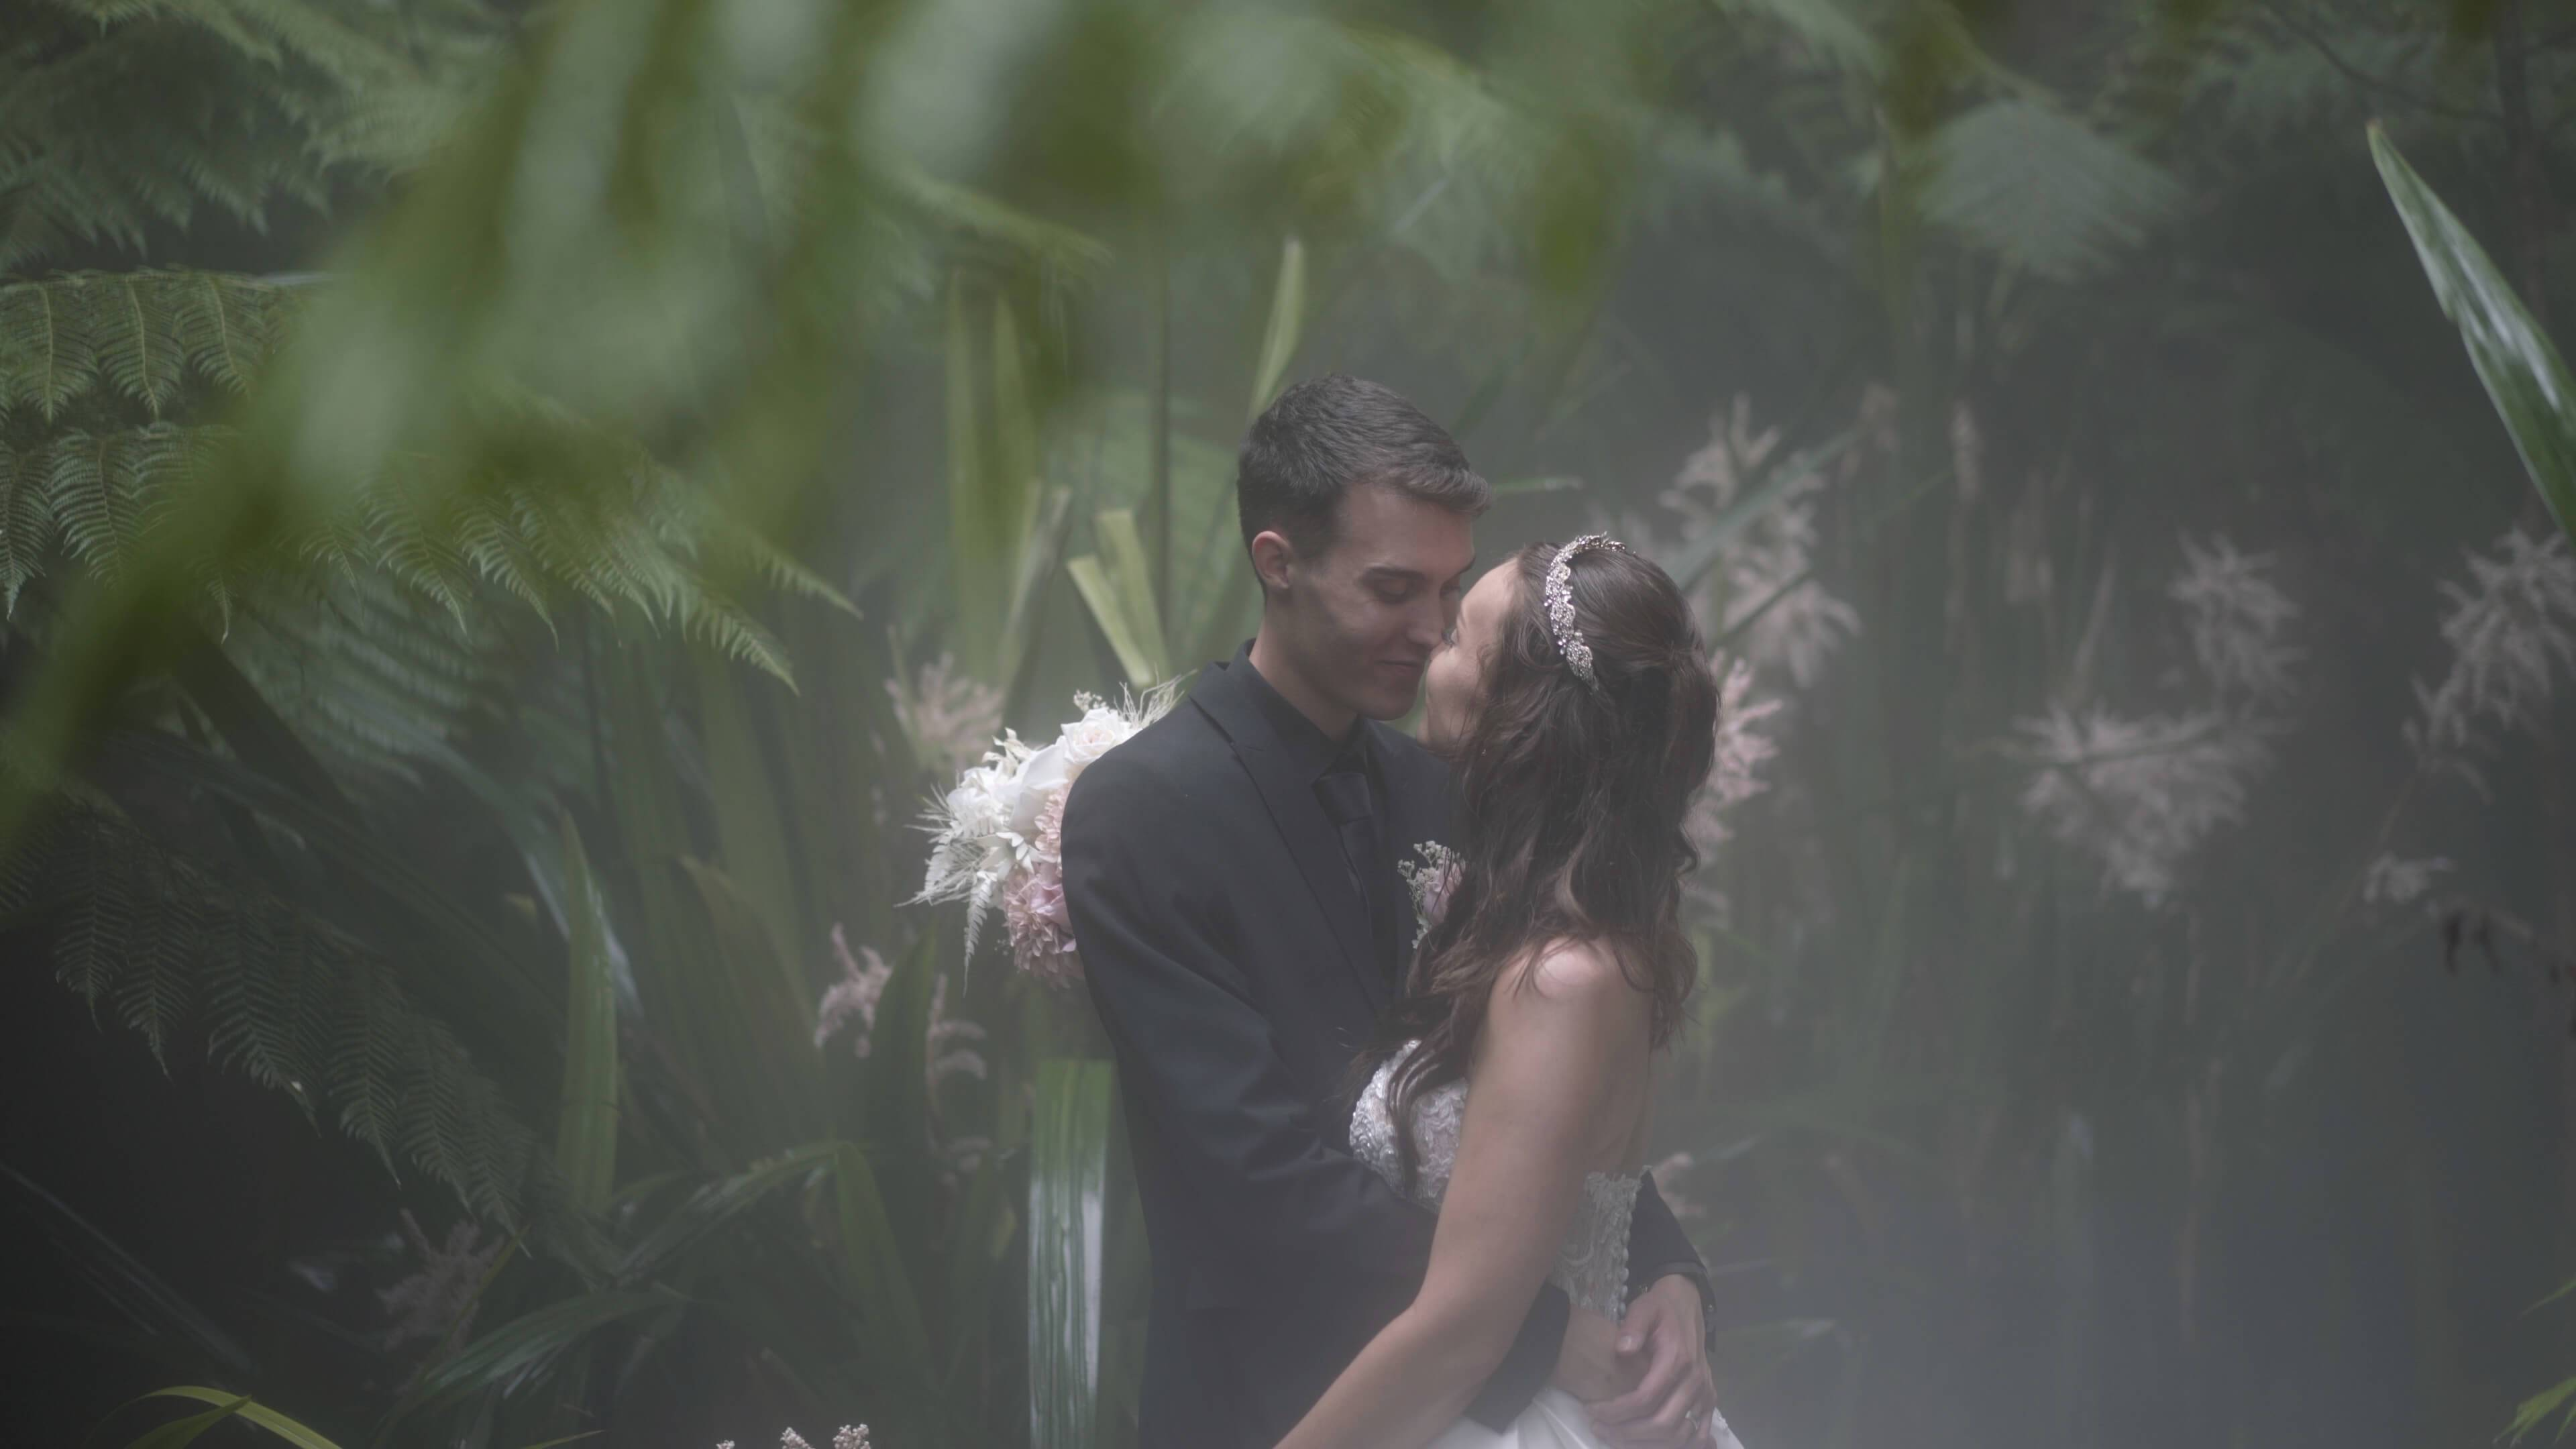 Newly married couple posing in a misty forest - wedding videography services in Canberra and surrounding areas - Lovereel